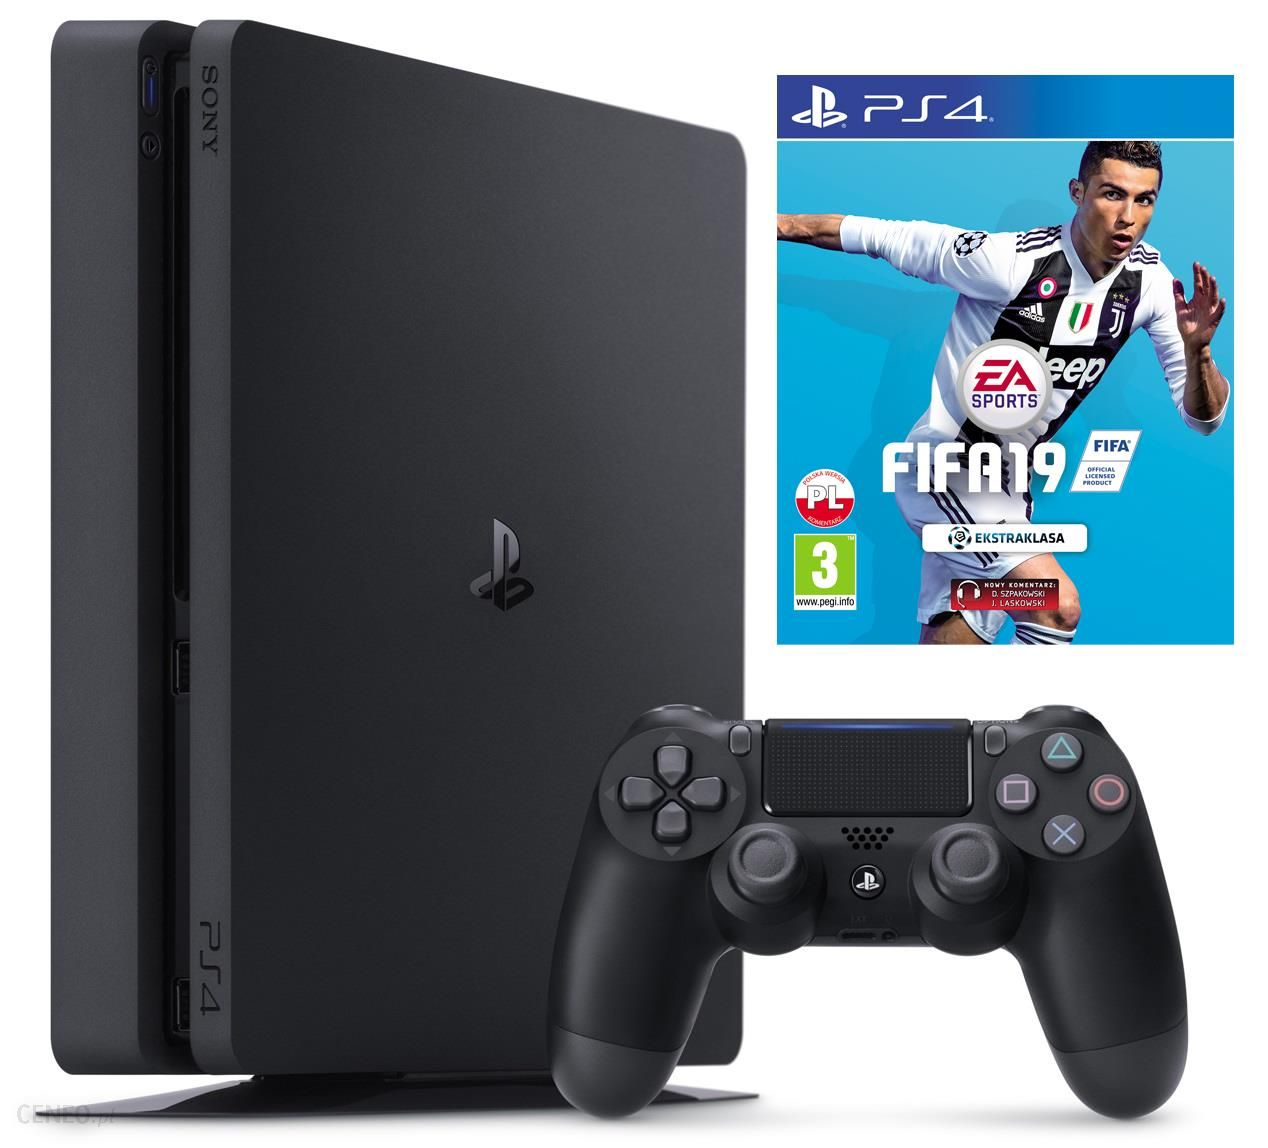 _uploads_images_subpages_1328_subpage_i-sony-playstation-4-slim-500gb-gra-fifa-19.jpg